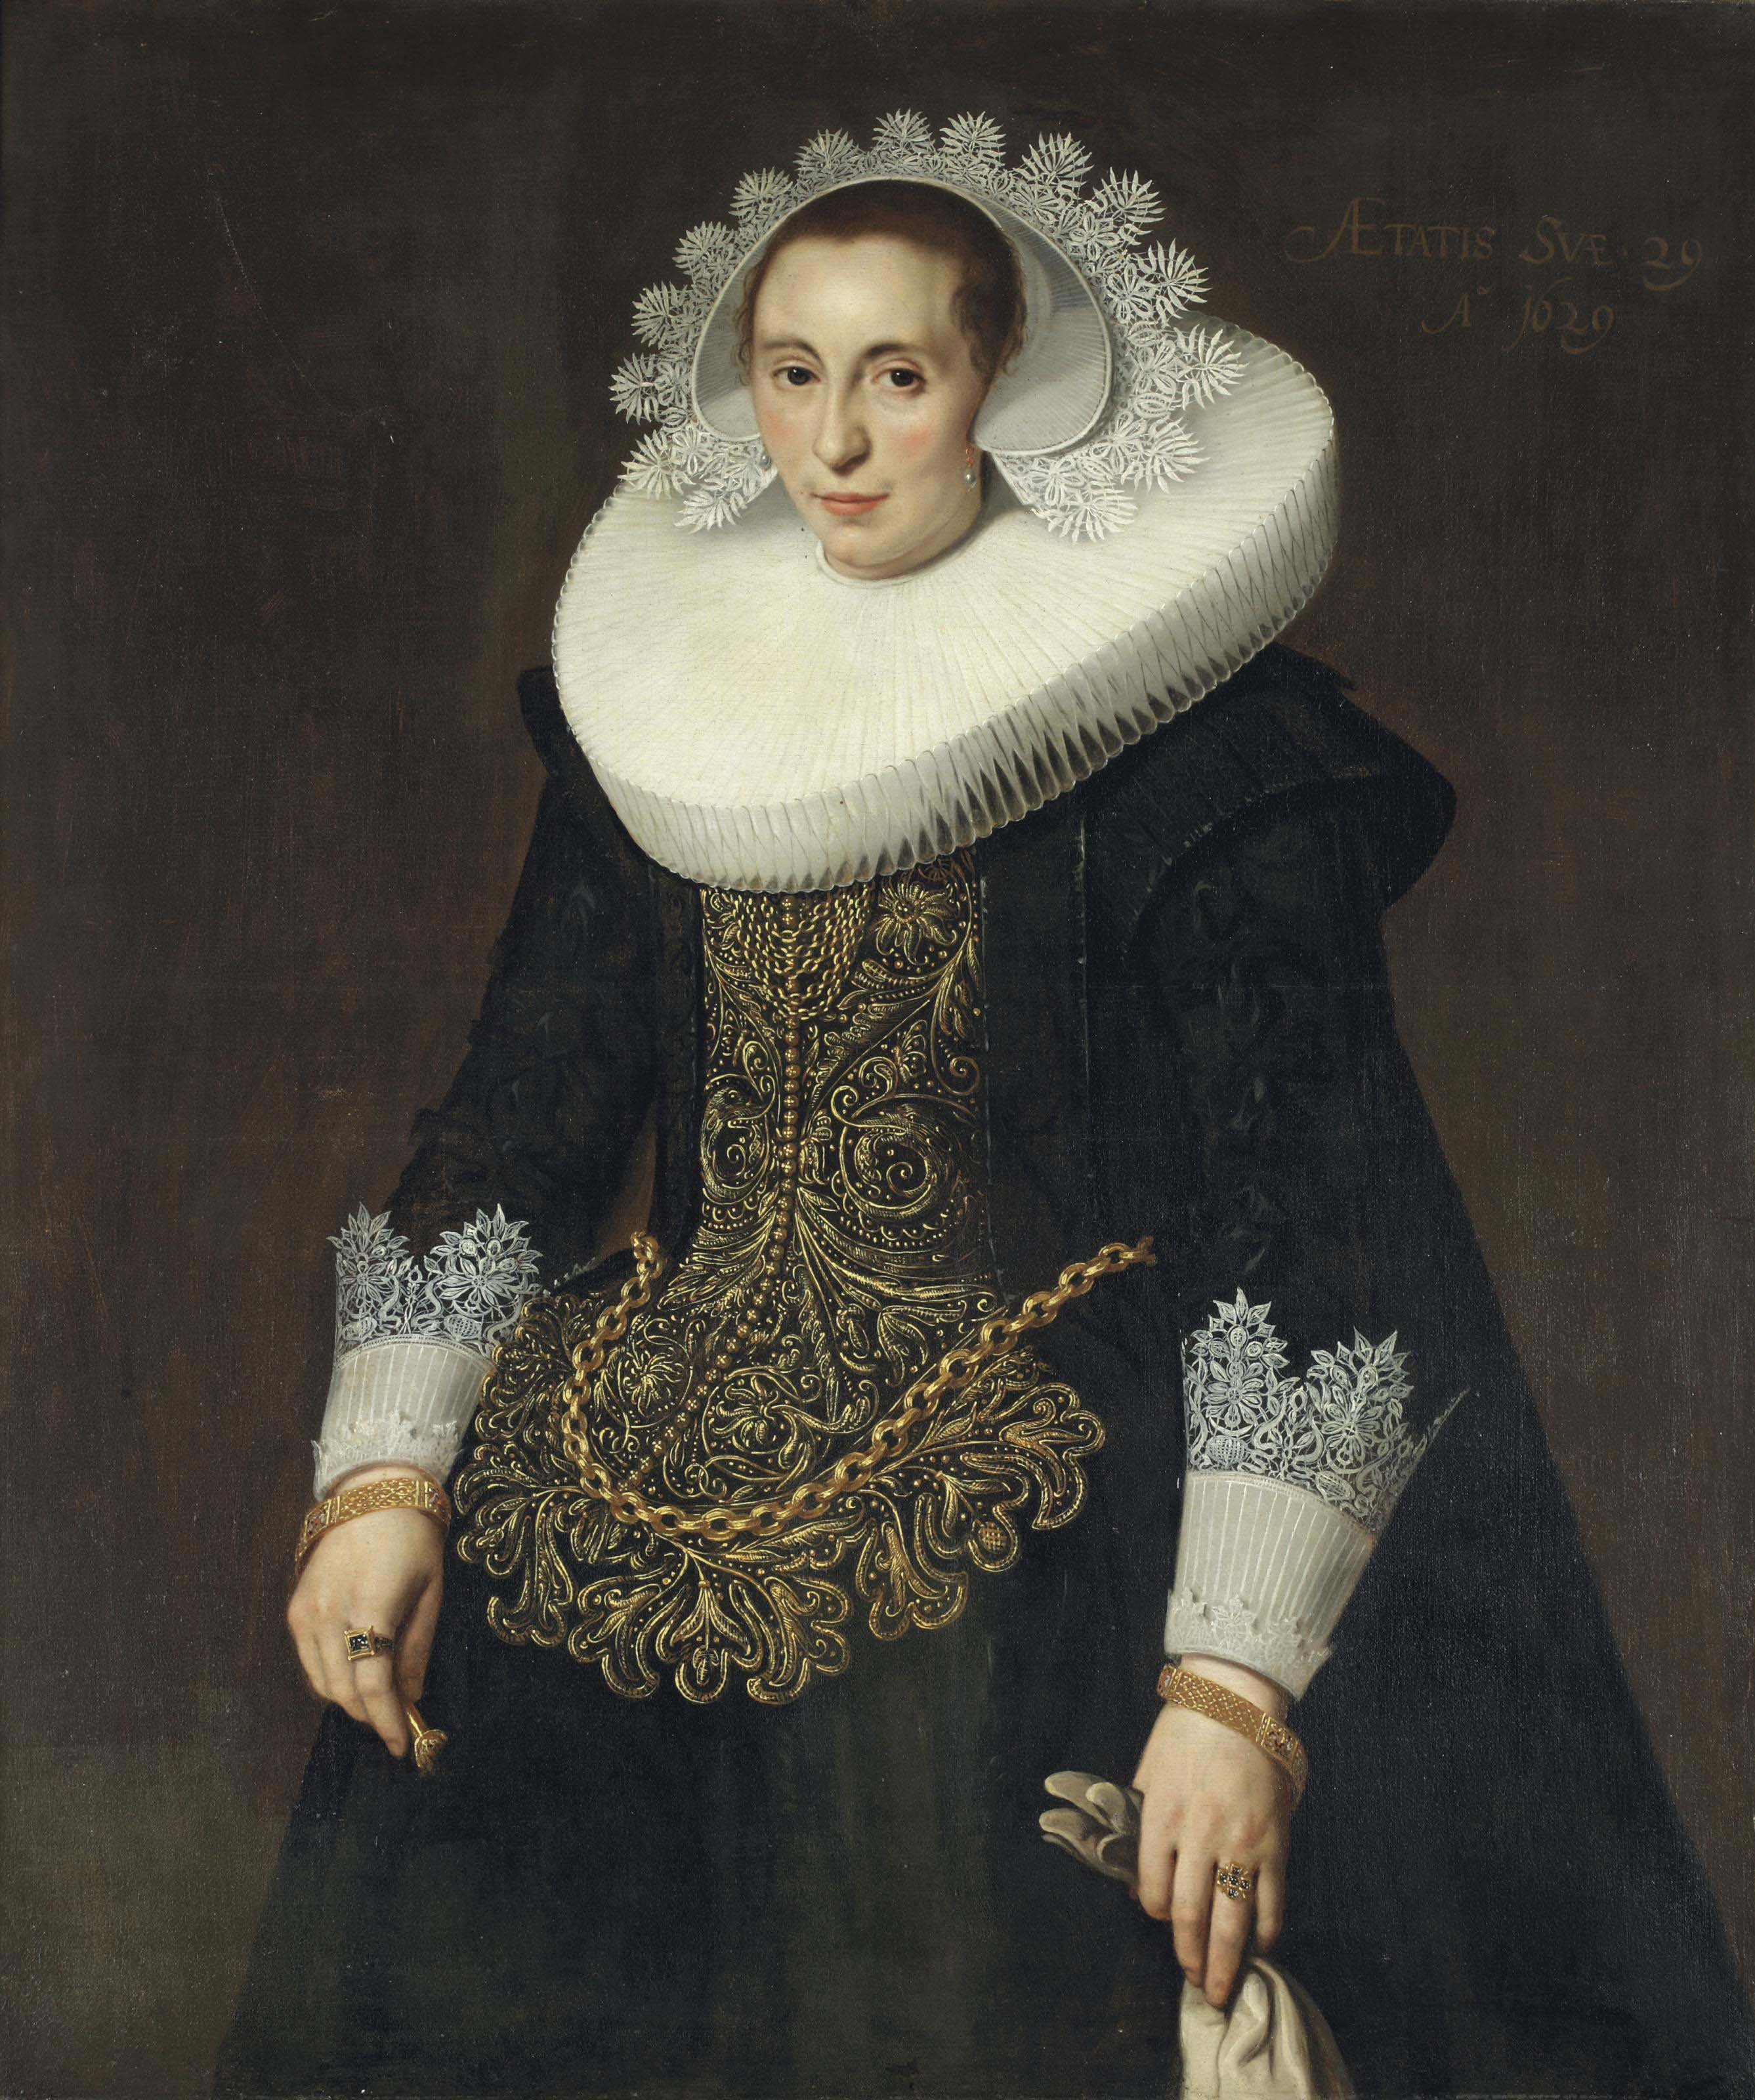 Portrait of a lady, three-quarter-length, in a golden embroidered dress with a white lace collar and a white lace cap, with two golden bracelets and rings